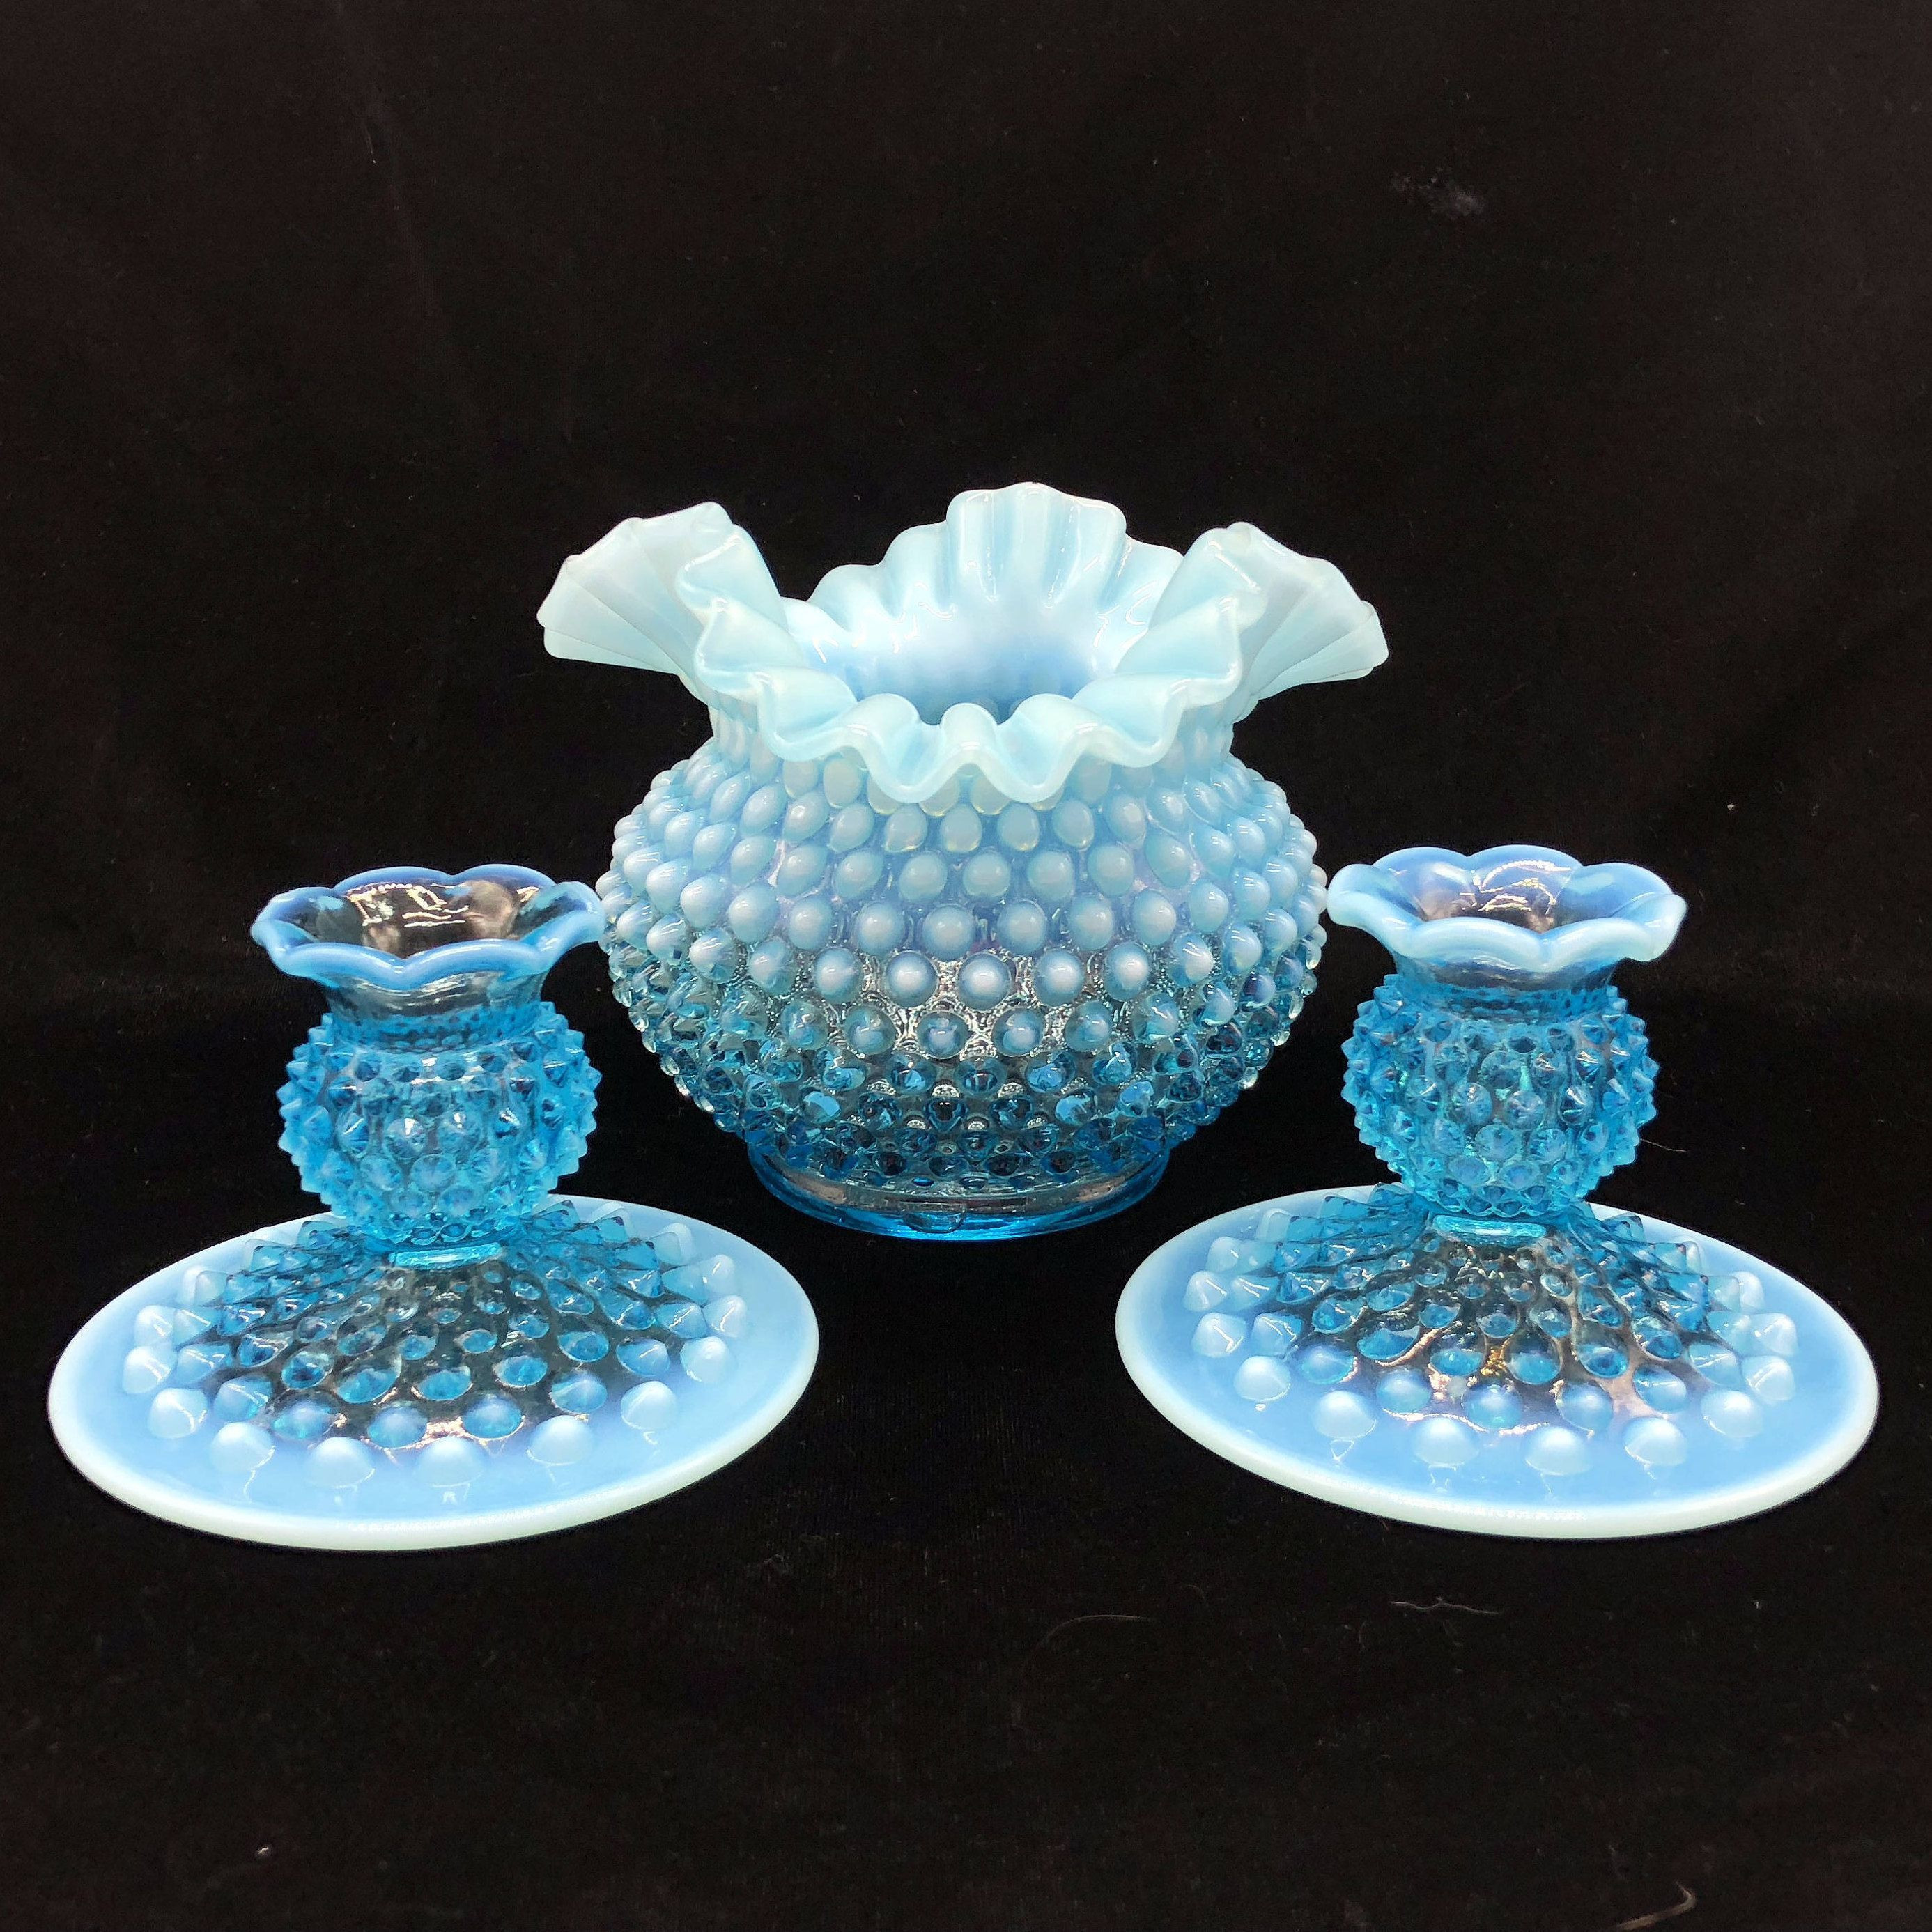 3 piece glass vase set of 37 fenton blue glass vase the weekly world throughout fenton hobnail glass centerpiece set blue opalescent vase candle